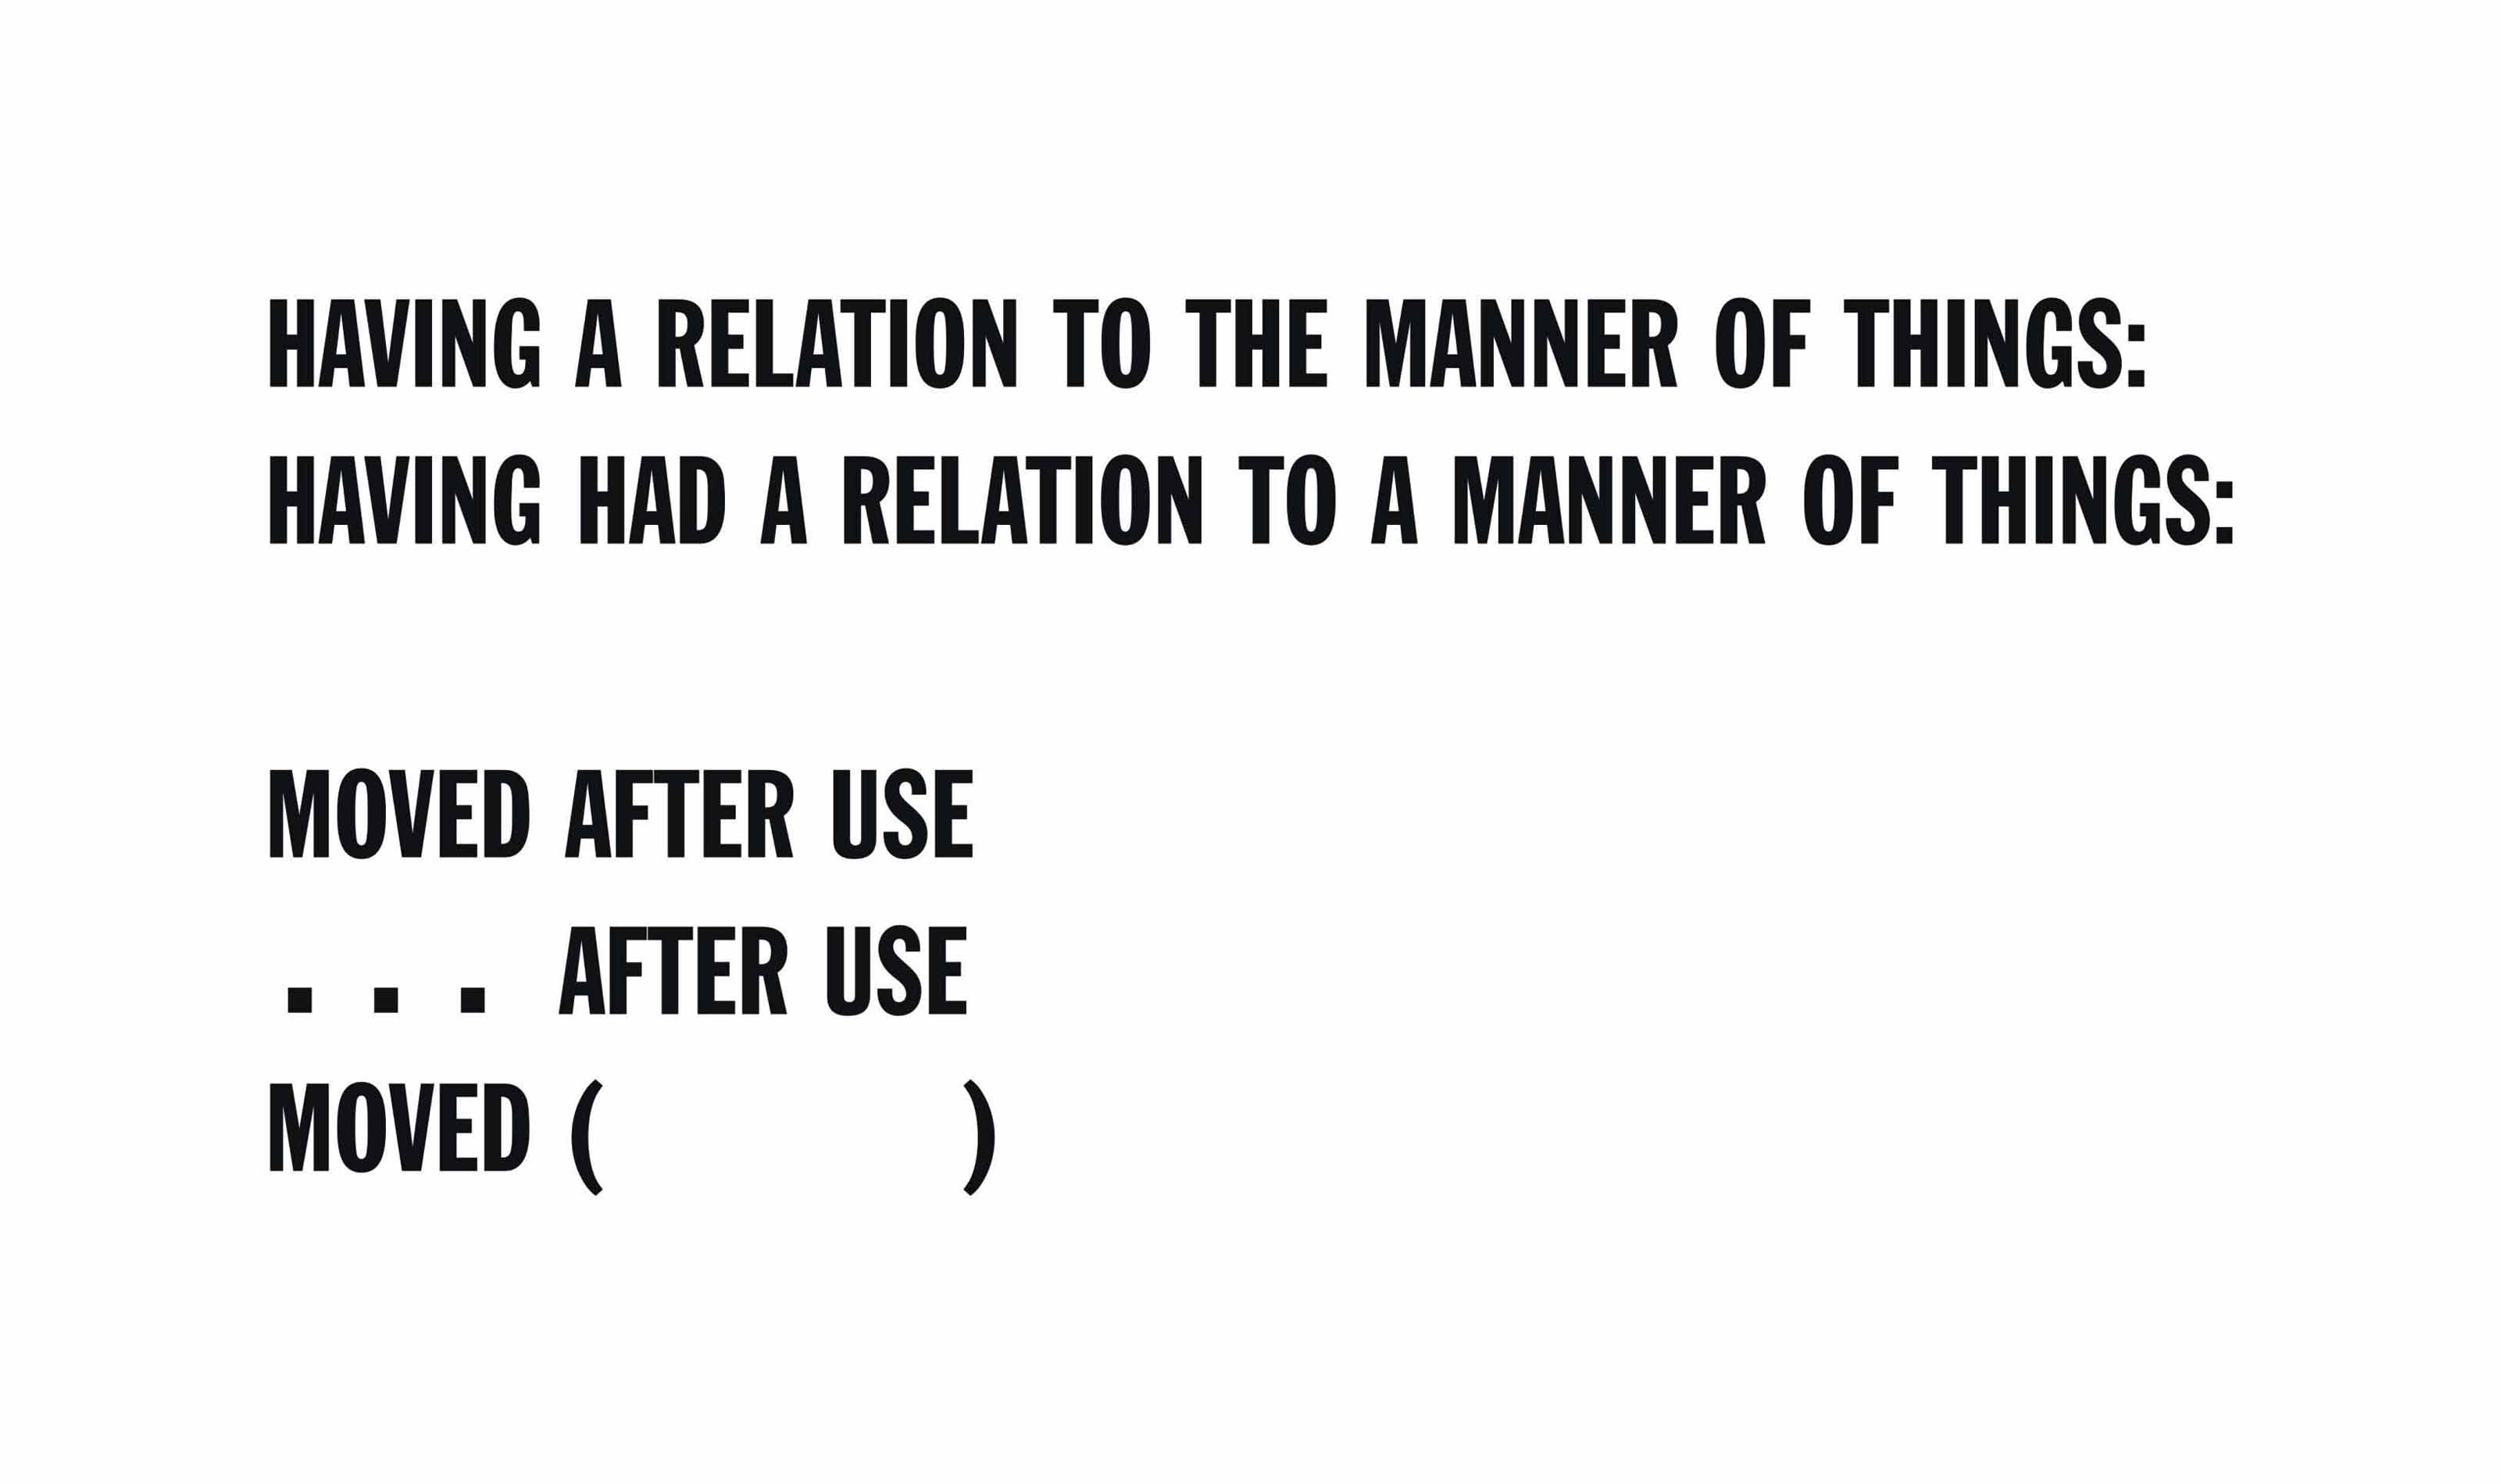 HAVING A RELATION TO THE MANNER OF THINGS:  HAVING HAD A RELATION TO THE MANNER OF THINGS:    MOVED AFTER USE  ... AFTER USE MOVED ( )